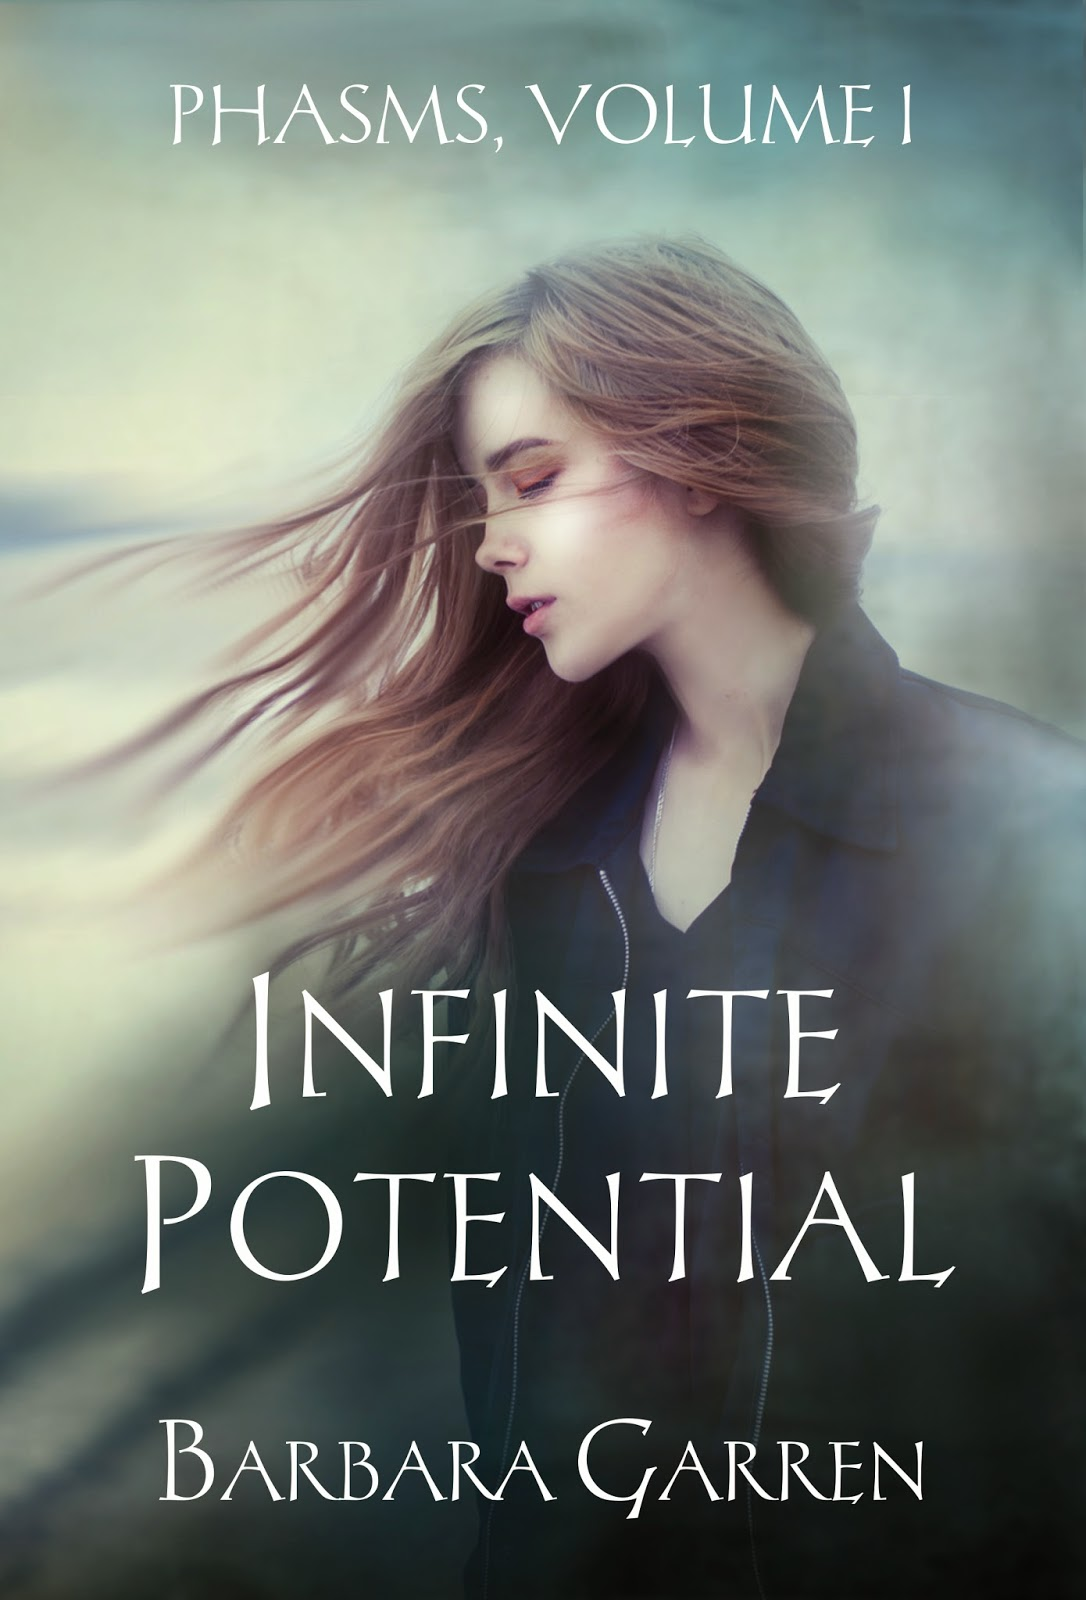 https://www.goodreads.com/book/show/21965174-infinite-potential